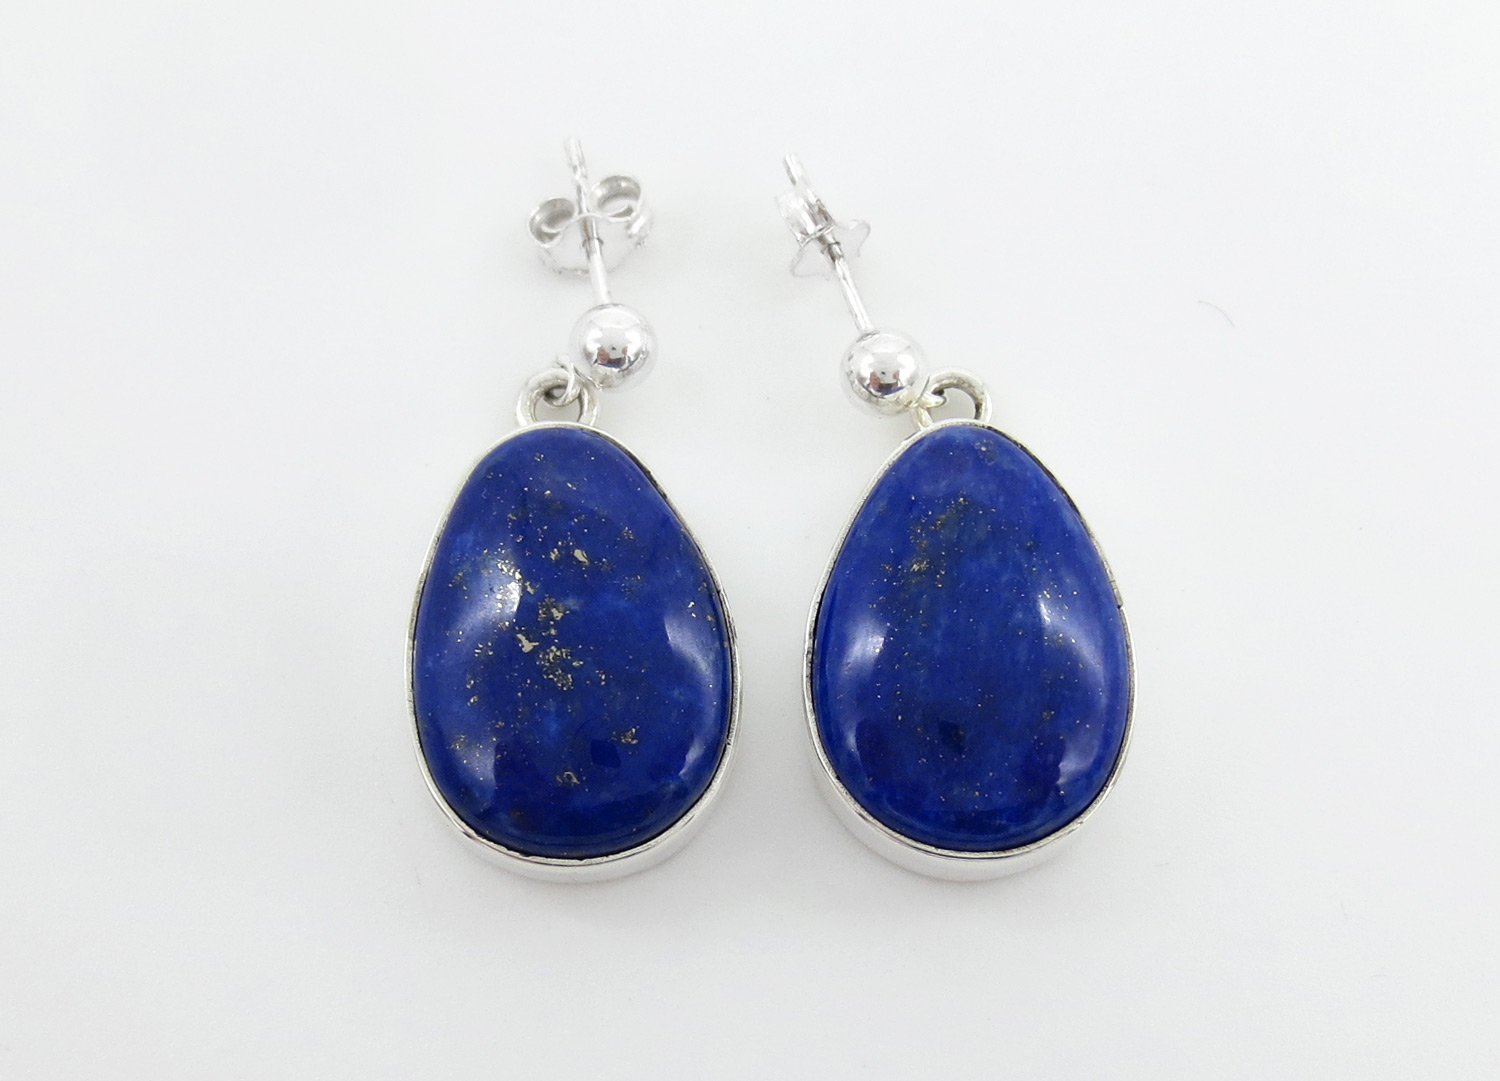 Lapis & Sterling Silver Earrings Native American Jewelry - 2134rio